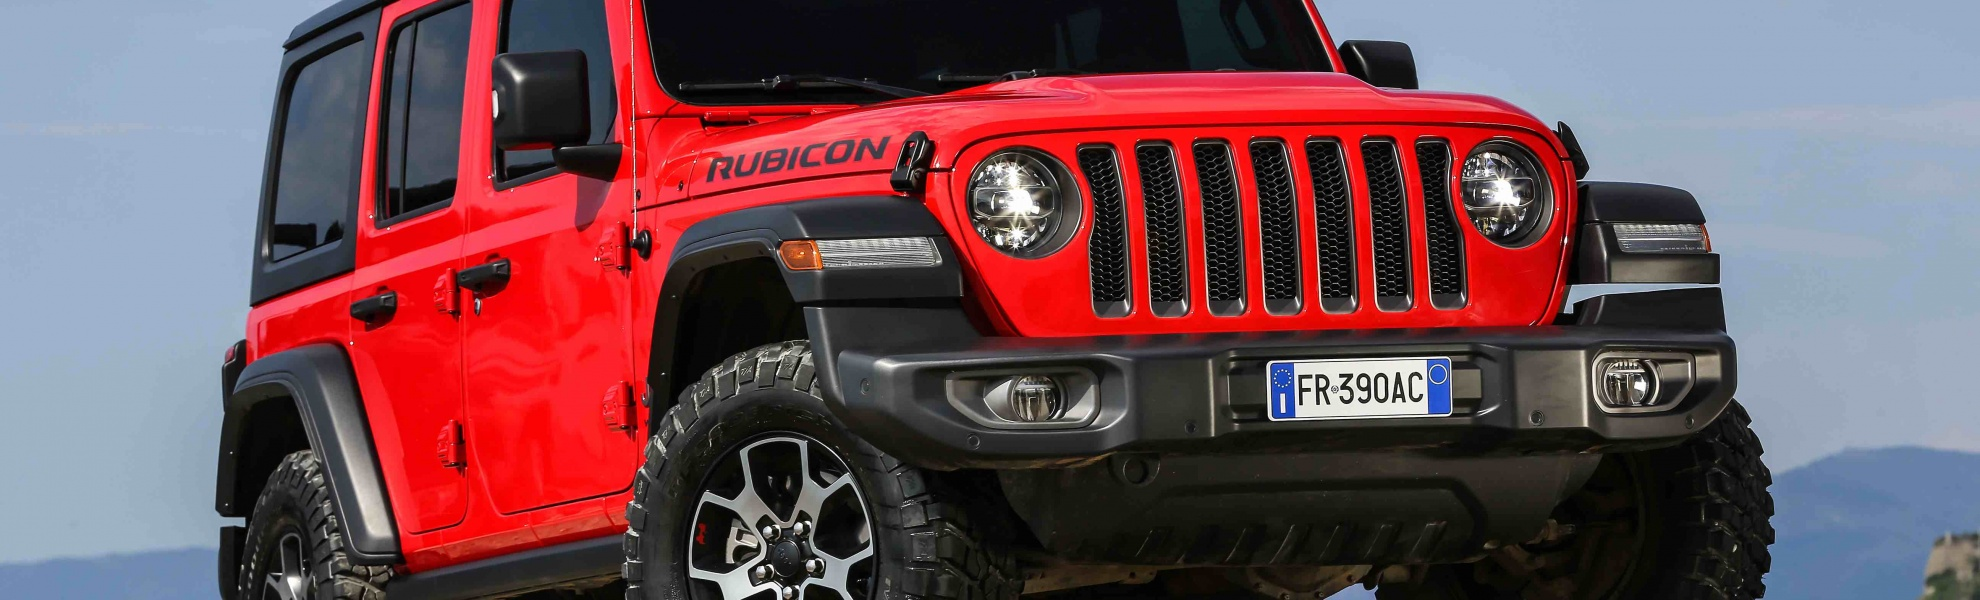 180703_Jeep_Rubicon_Unlimited_1.jpg